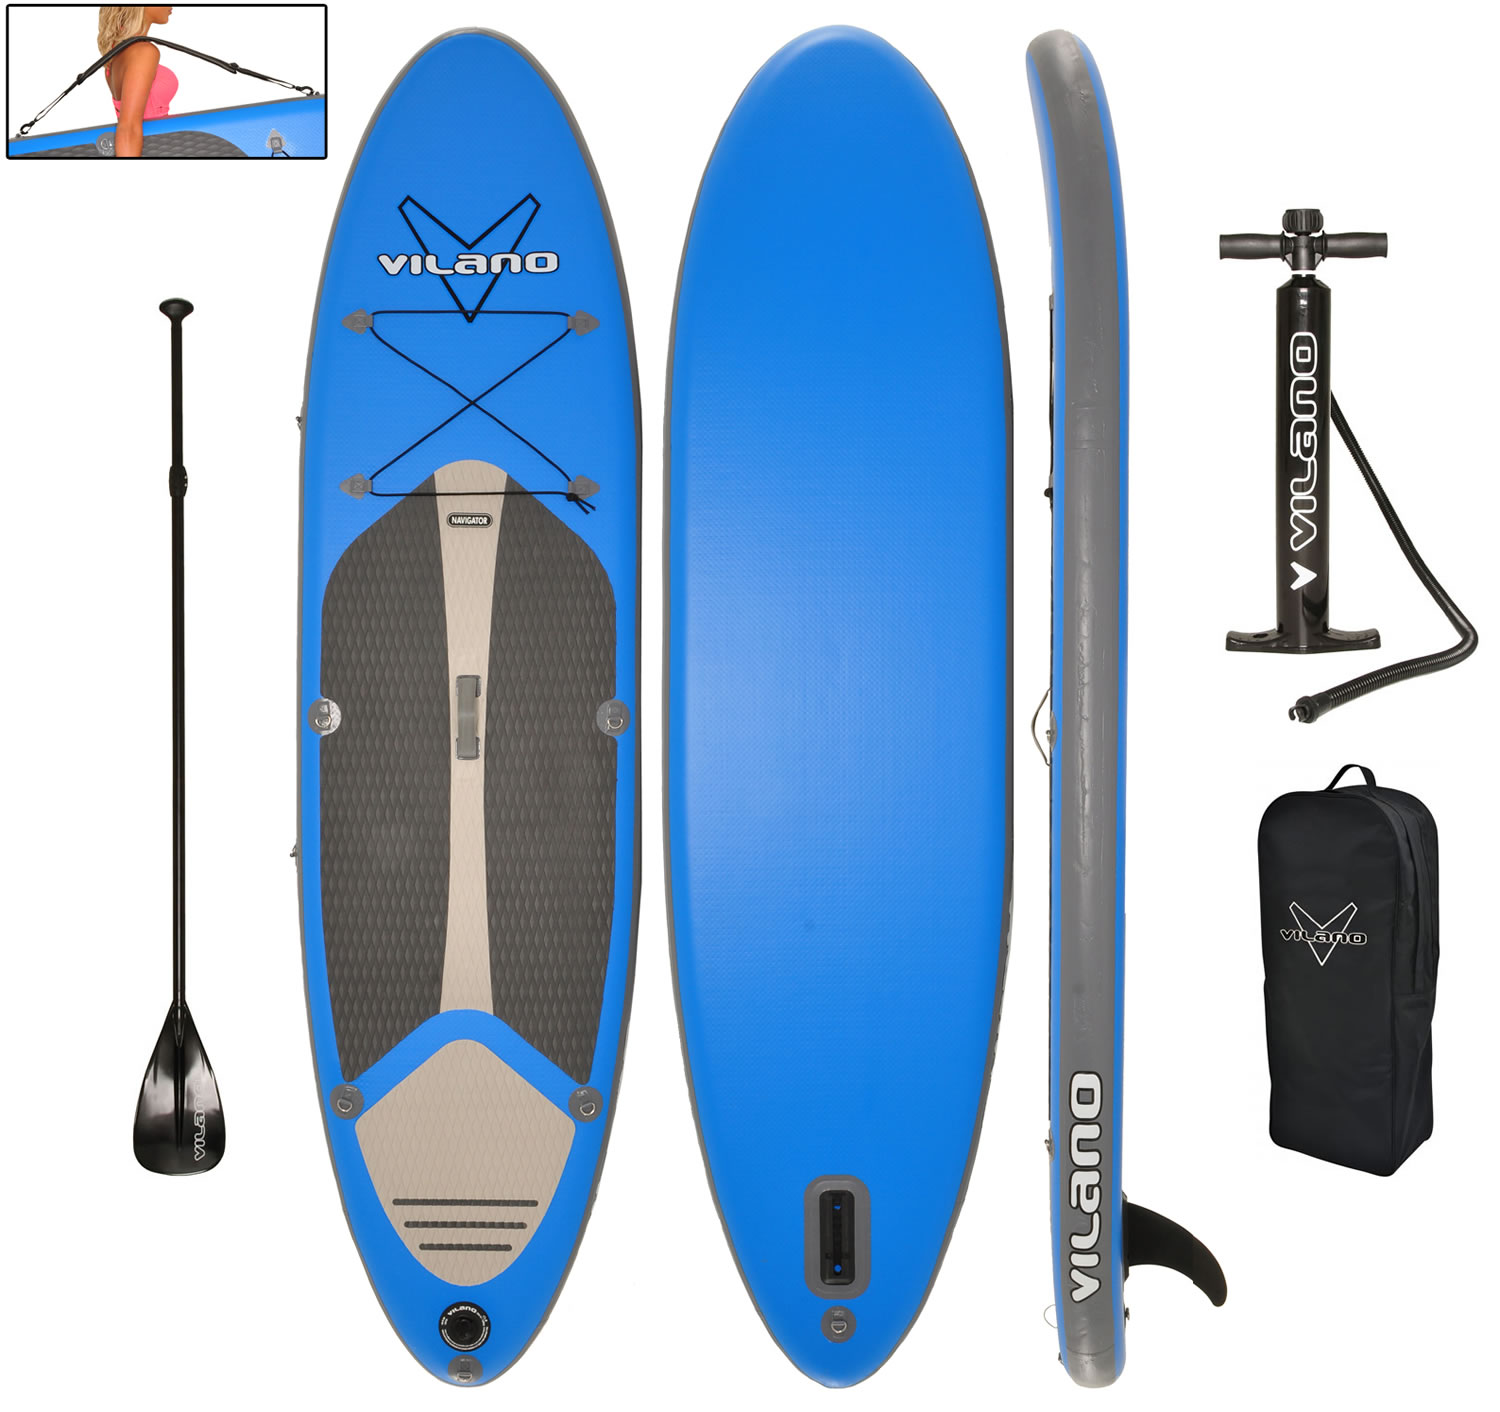 "Vilano Navigator 10' (6"" Thick) Inflatable SUP Stand Up Paddle Board Package by Vilano"